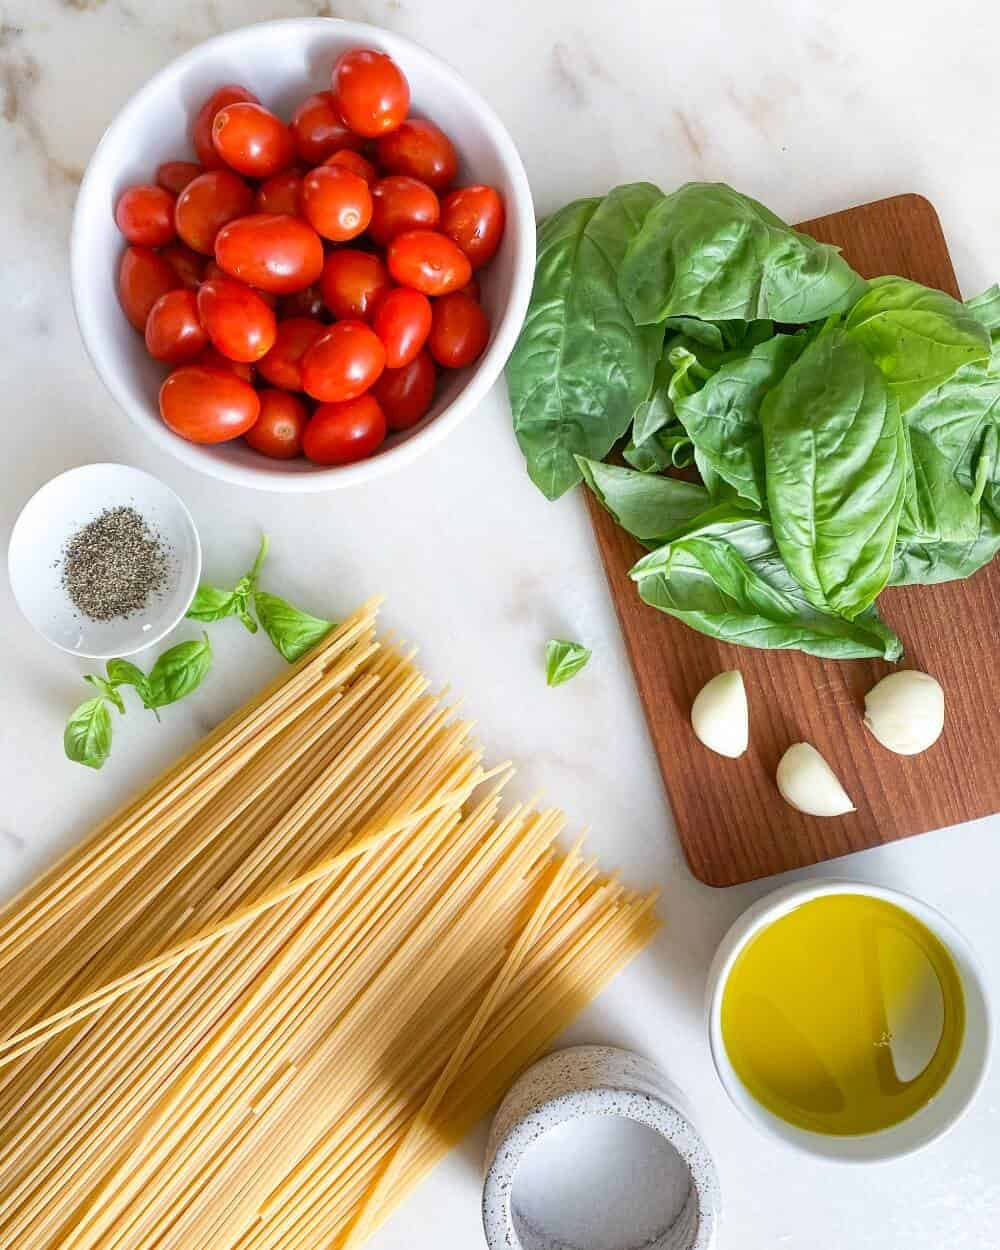 Ingredients of tomato and basil pasta displayed on a counter